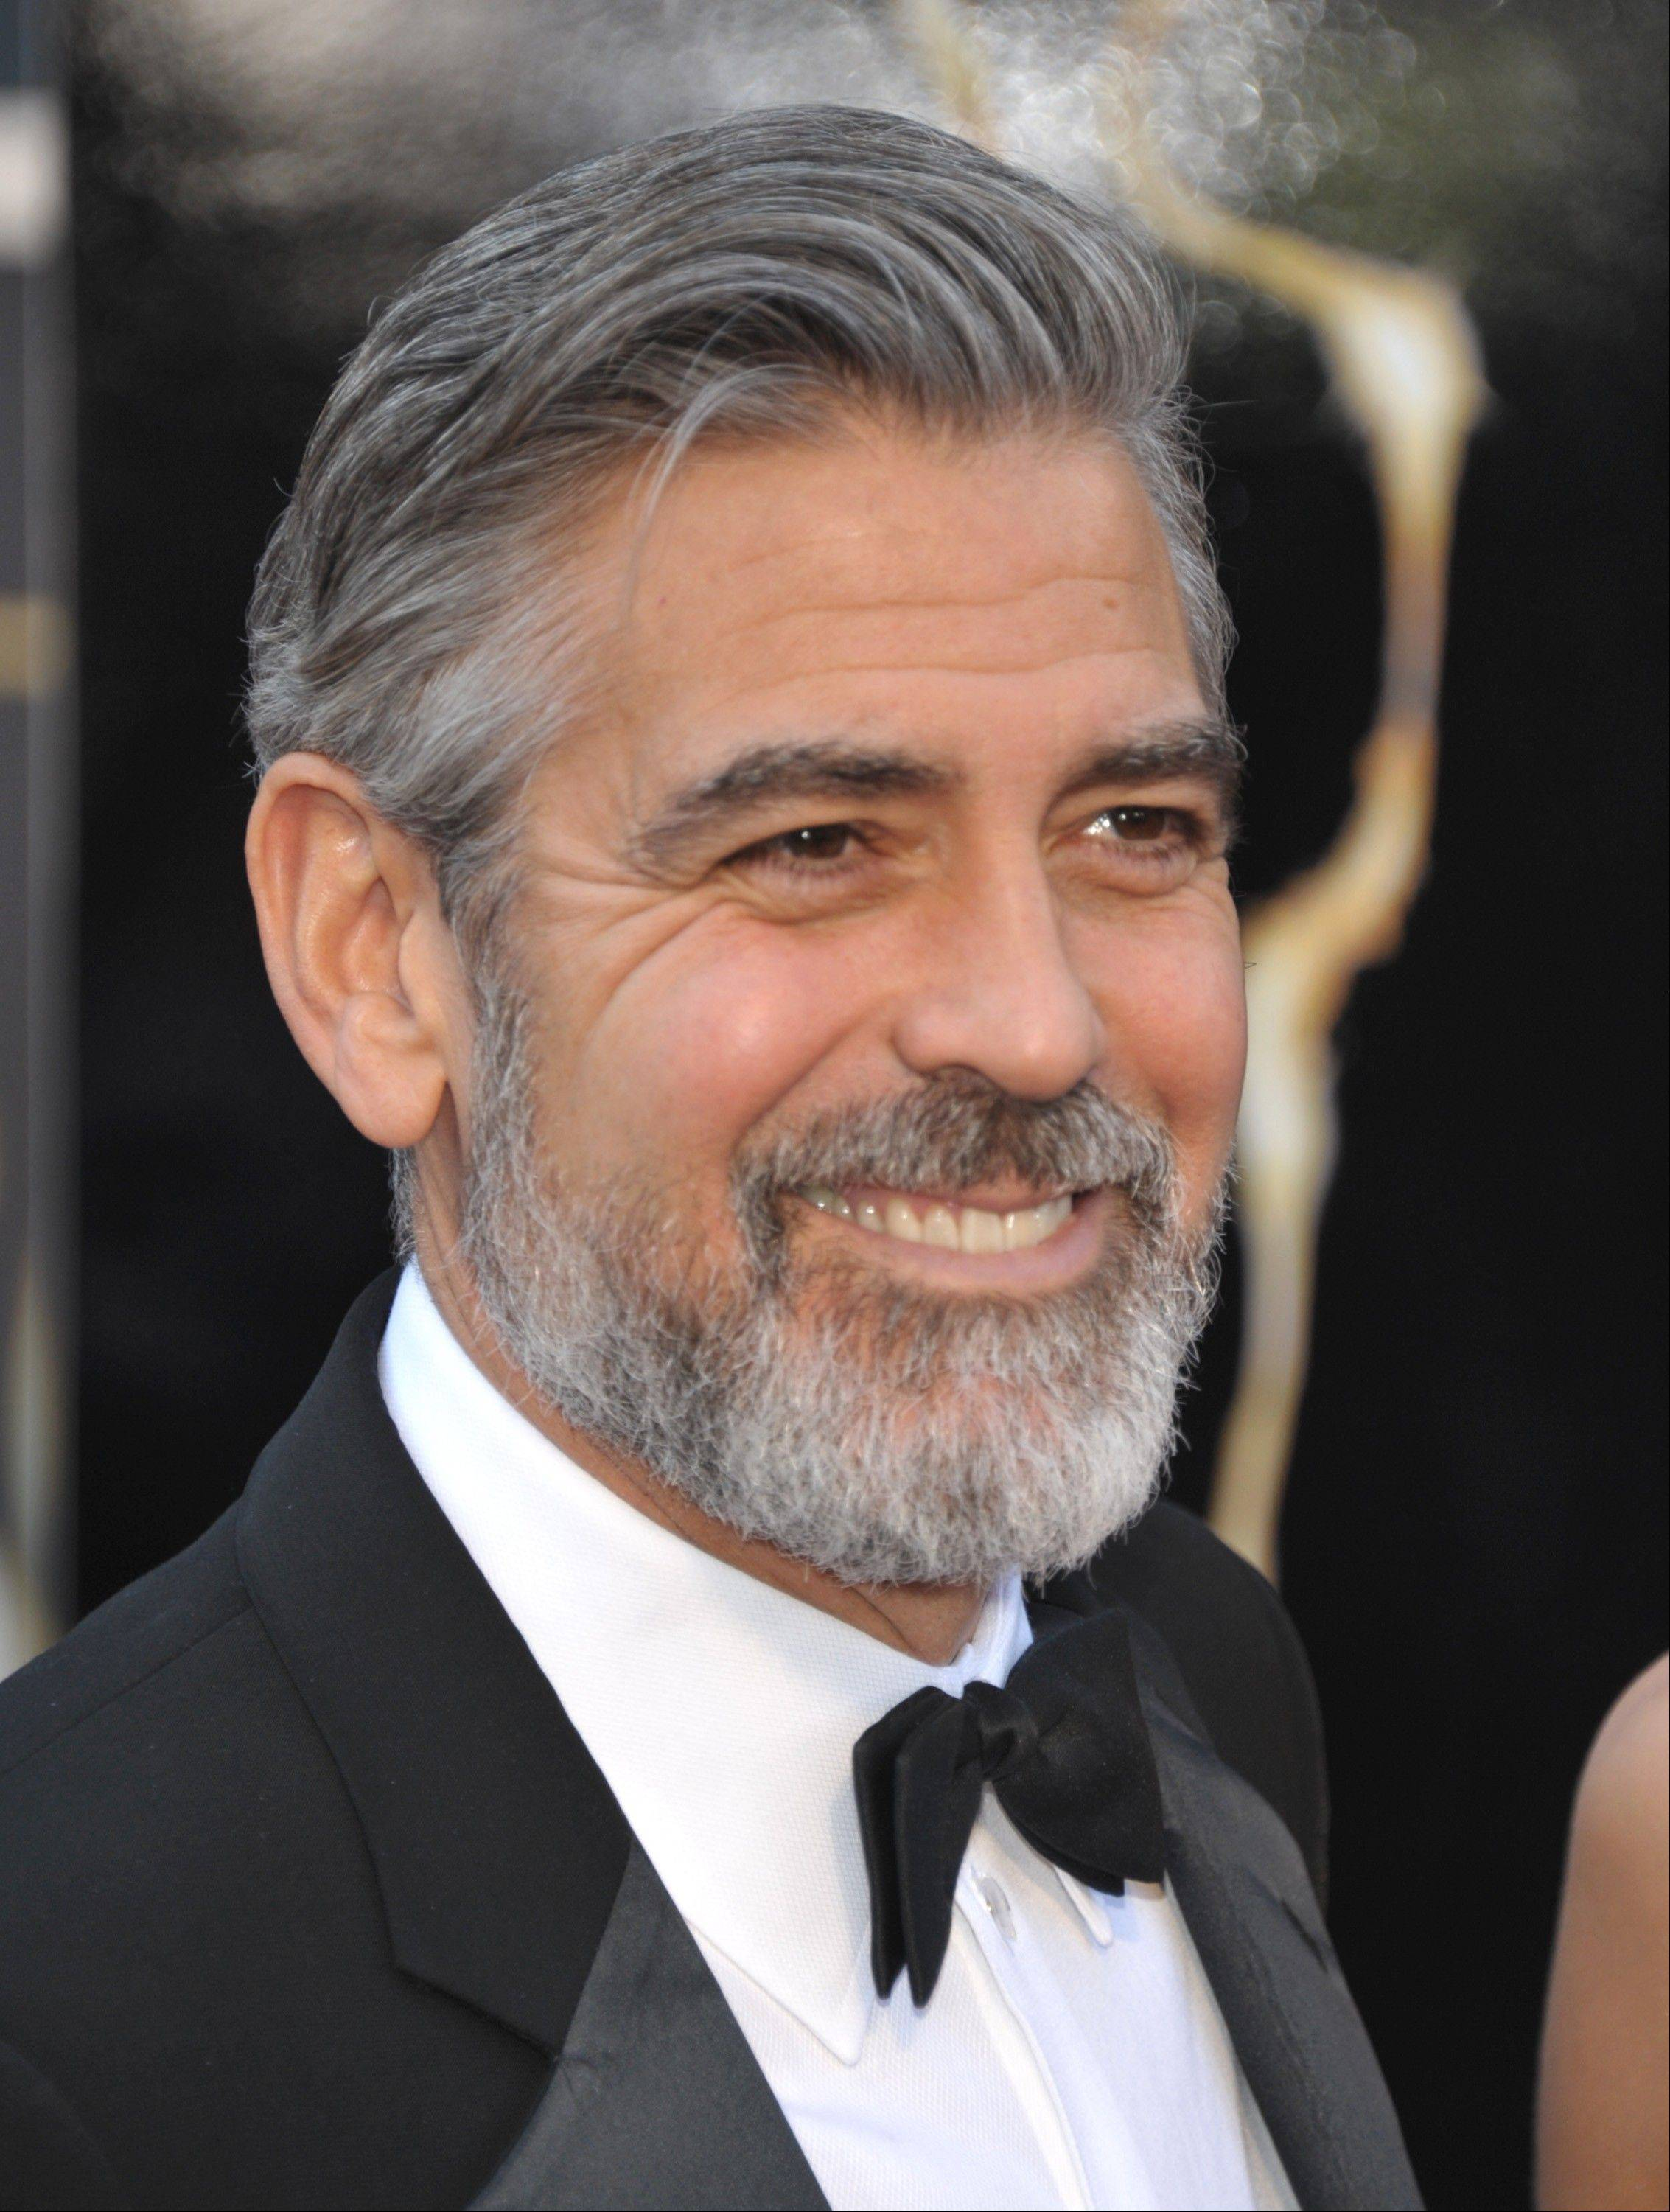 George Clooney knows the country is going through a tough time with the partial government shutdown. But the actor is optimistic that �cooler heads will prevail� and things will get back to normal.